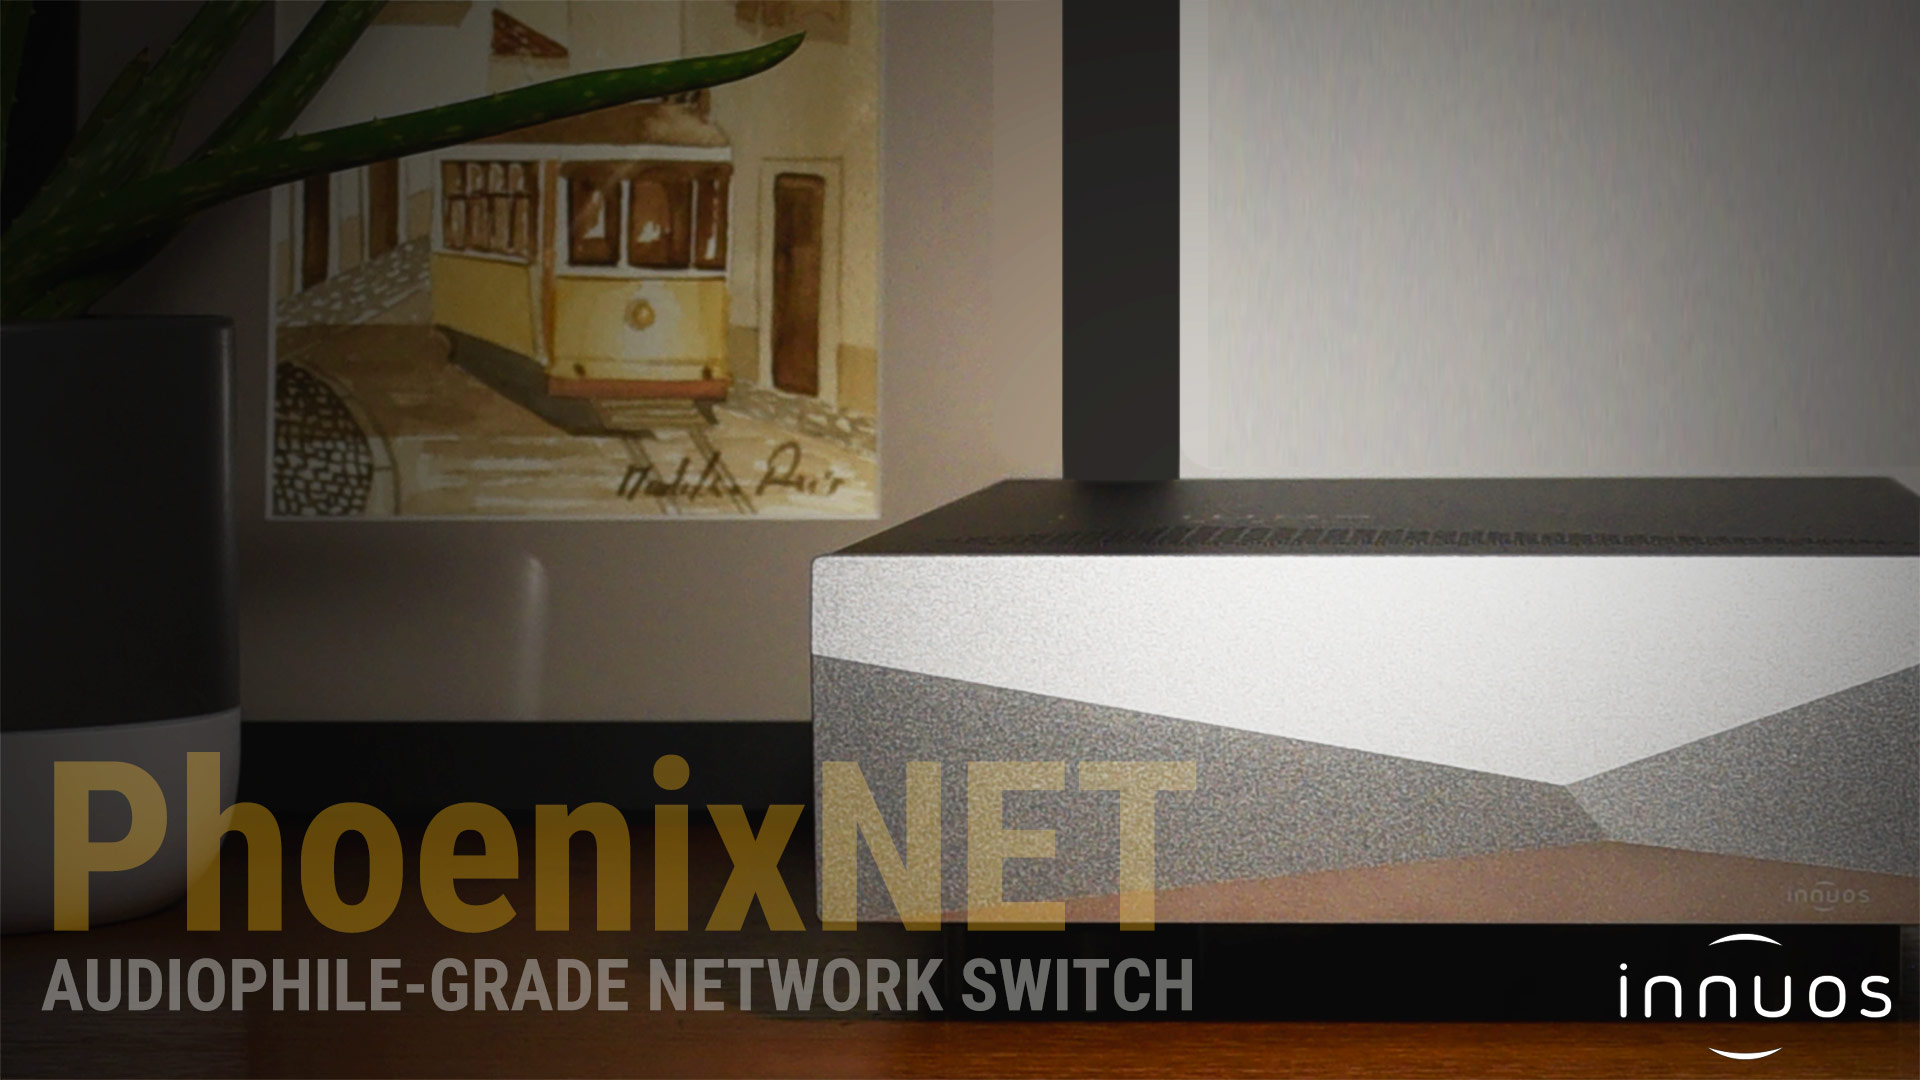 Innuos PhoenixNET Network Switch | Unilet Sound & Vision